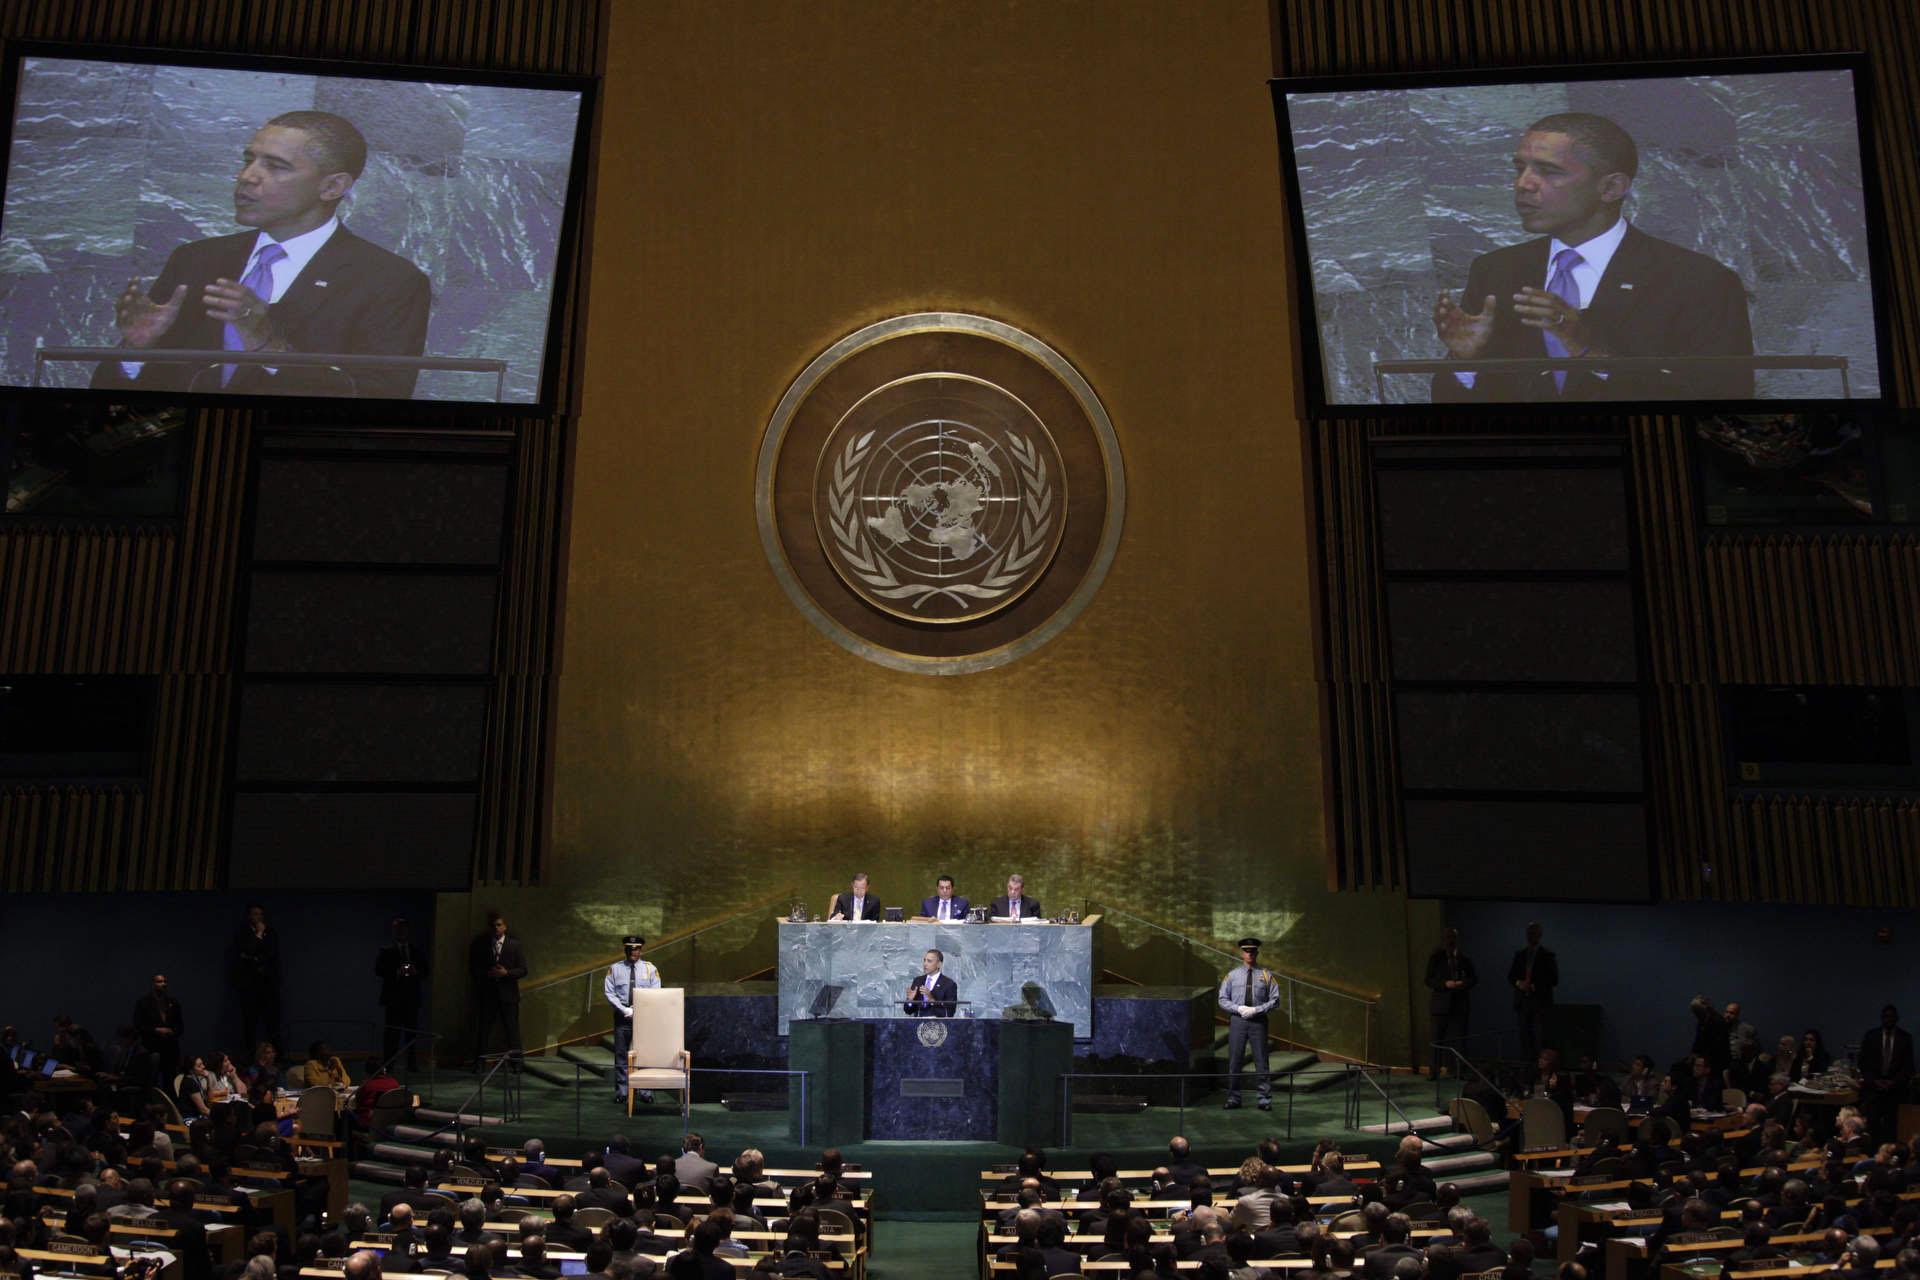 President Barack Obama addresses the United Nations General Assembly in New York